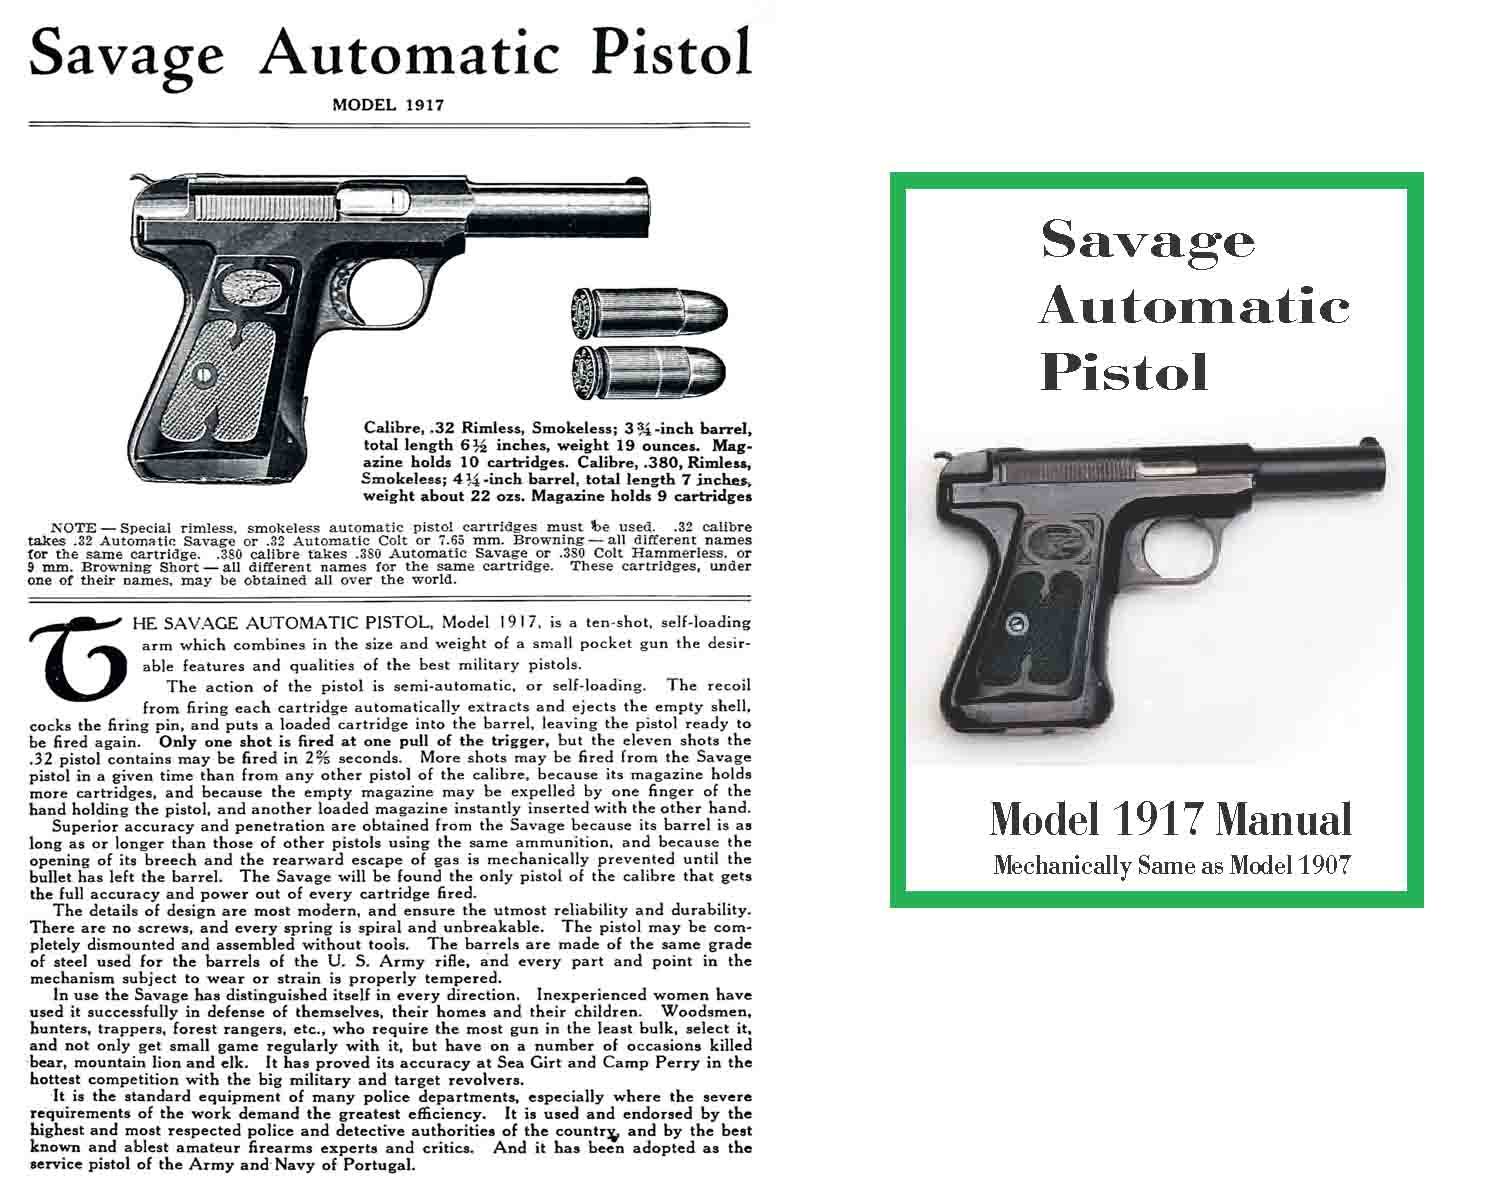 Savage M1907/1917 Automatic Pistol Manual